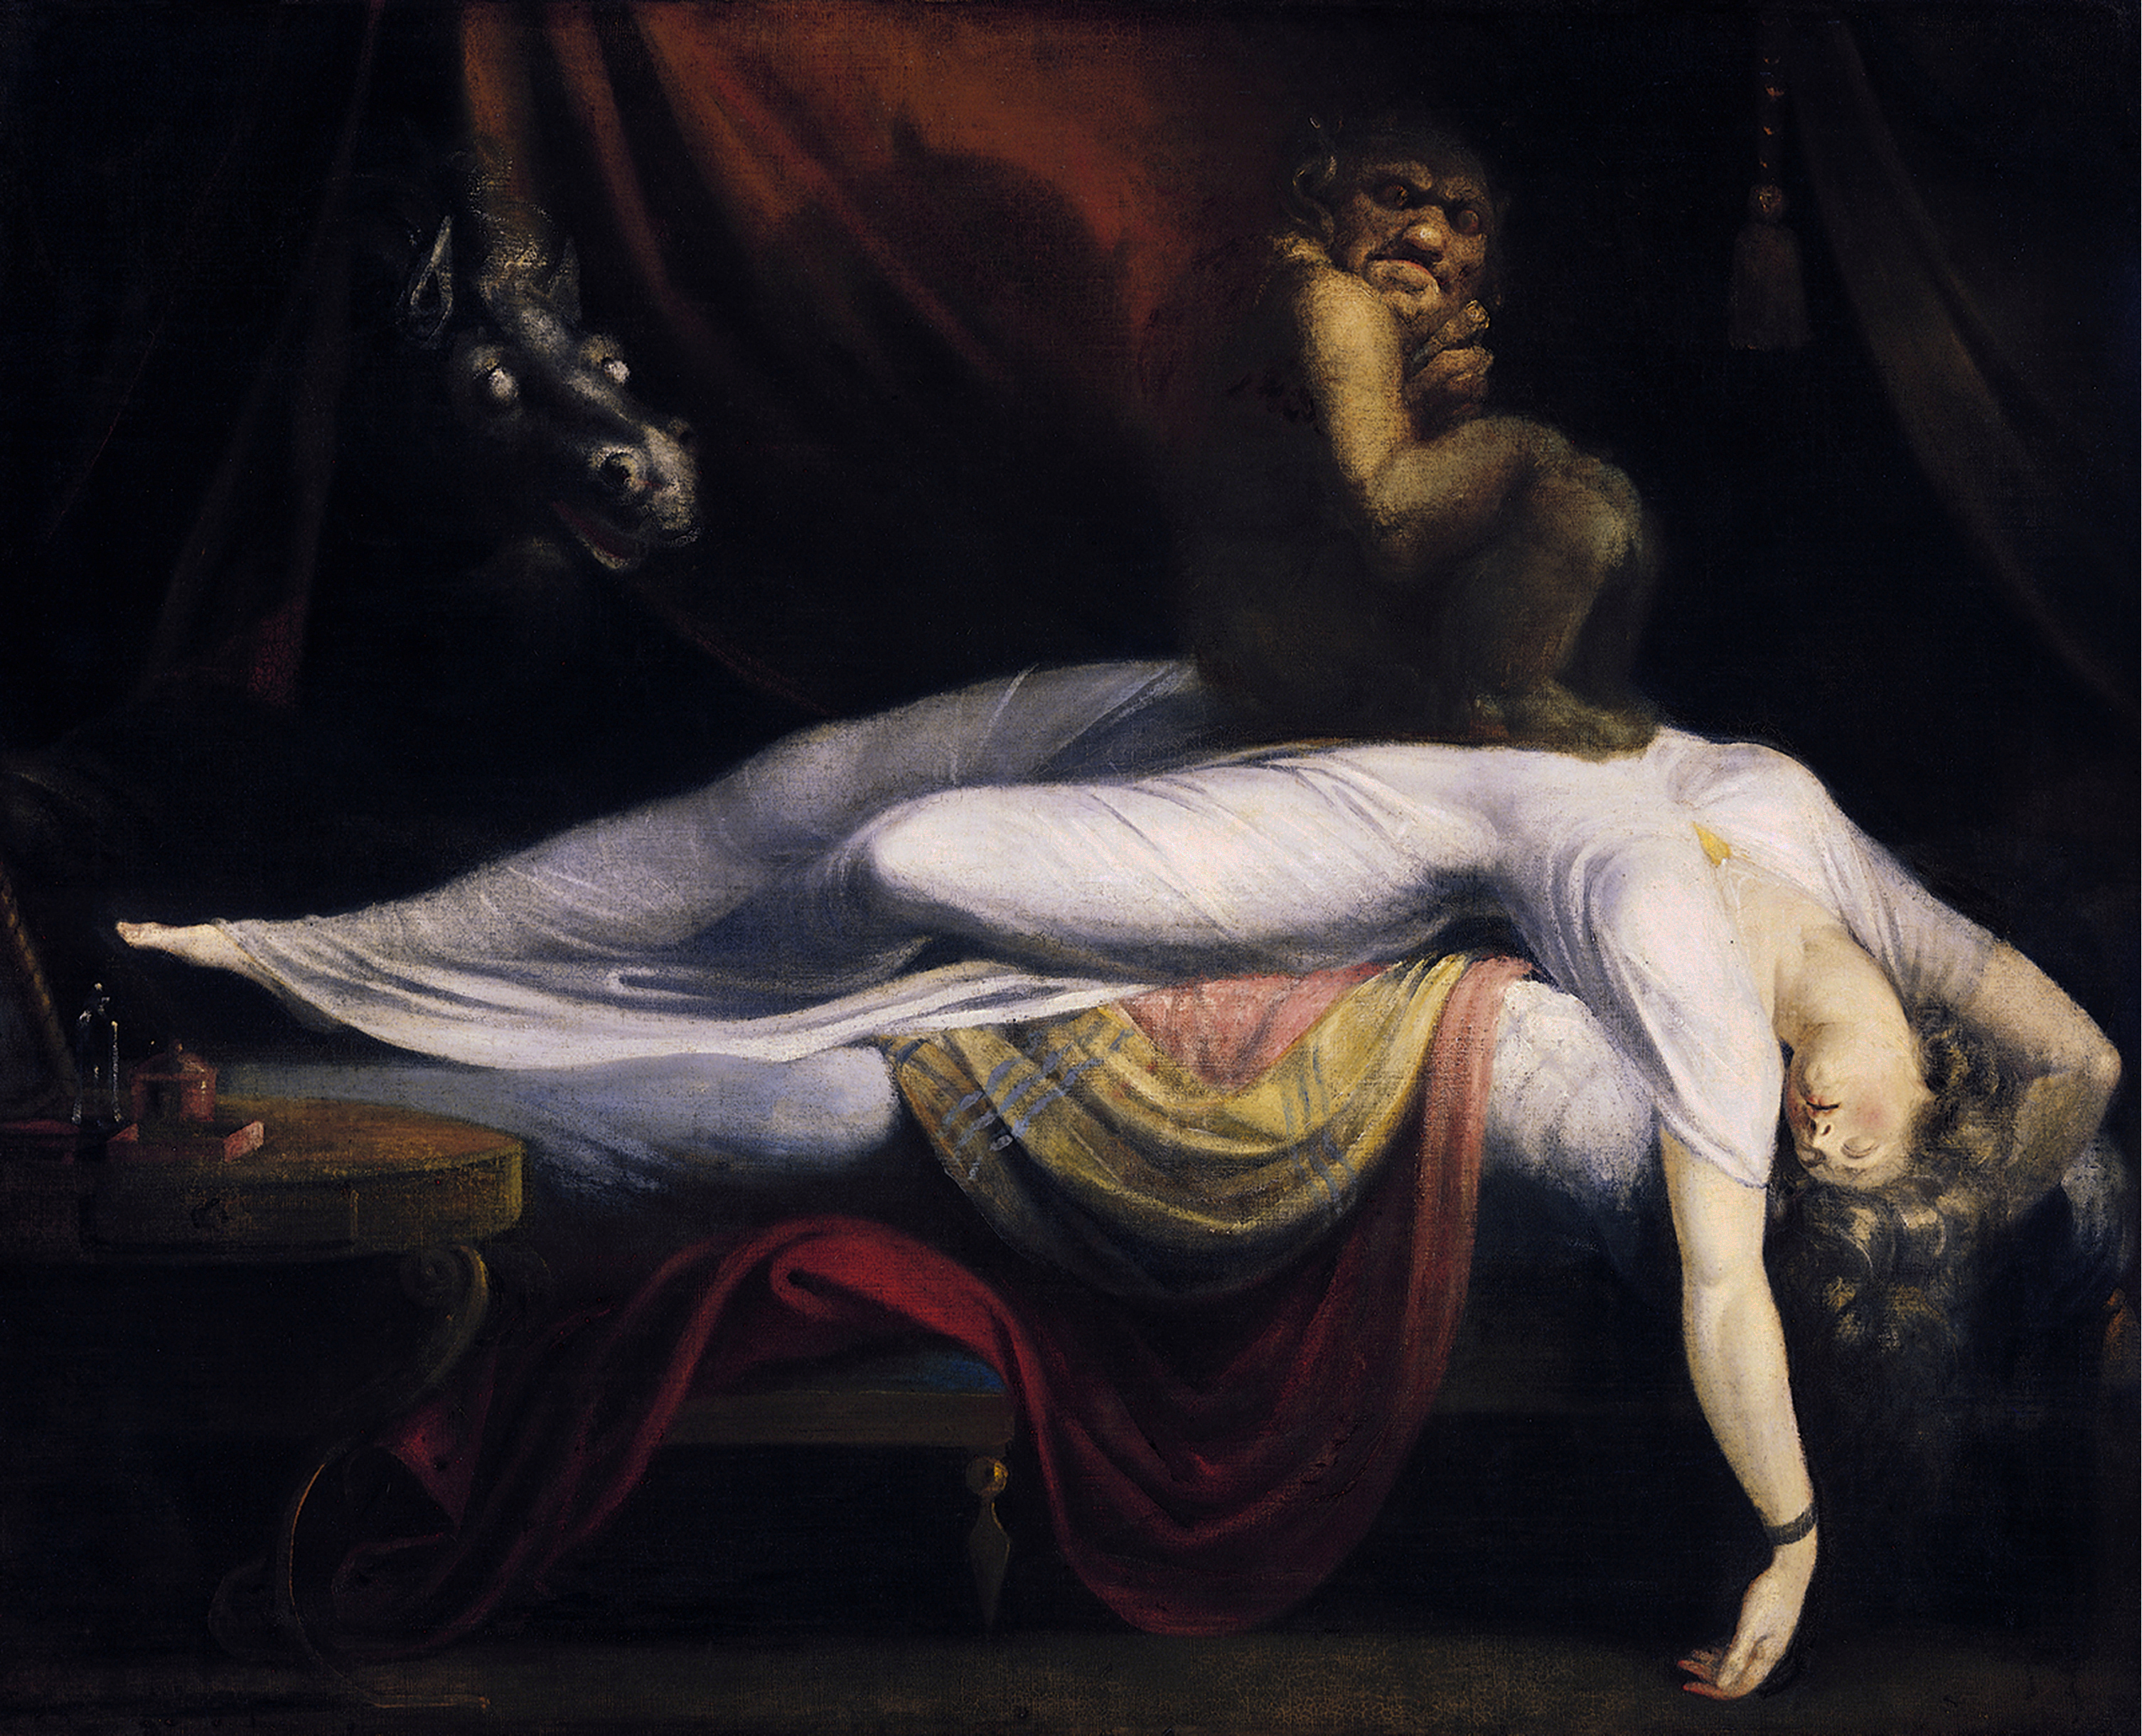 [Image: John_Henry_Fuseli_-_The_Nightmare.JPG]